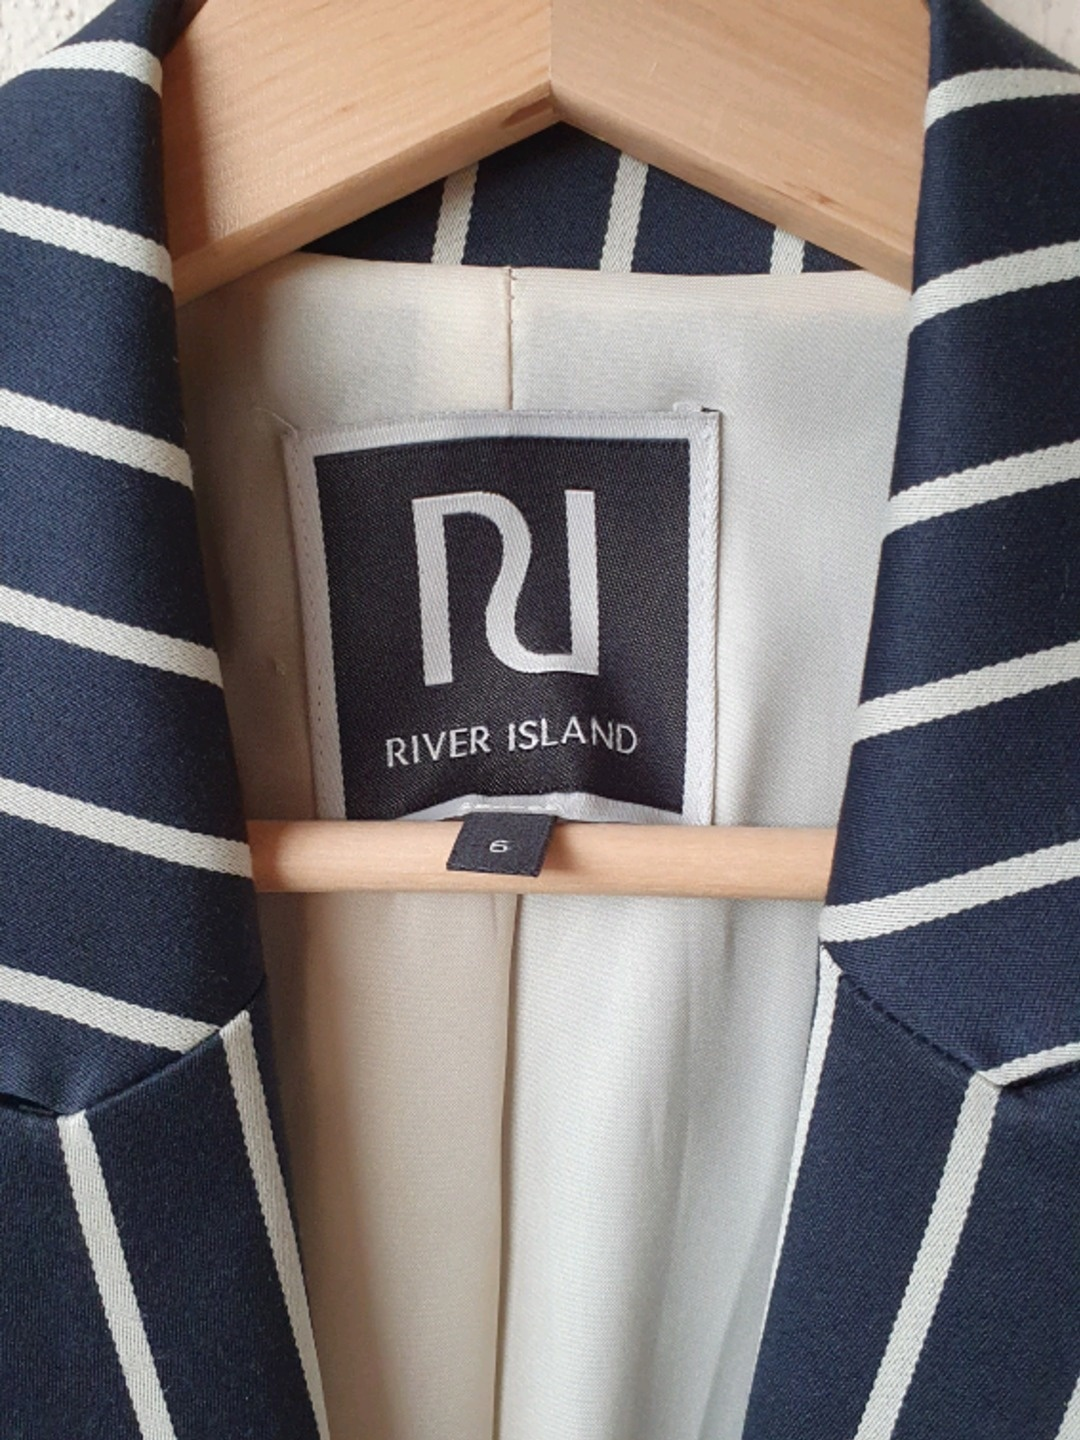 Women's coats & jackets - RIVER ISLAND photo 3